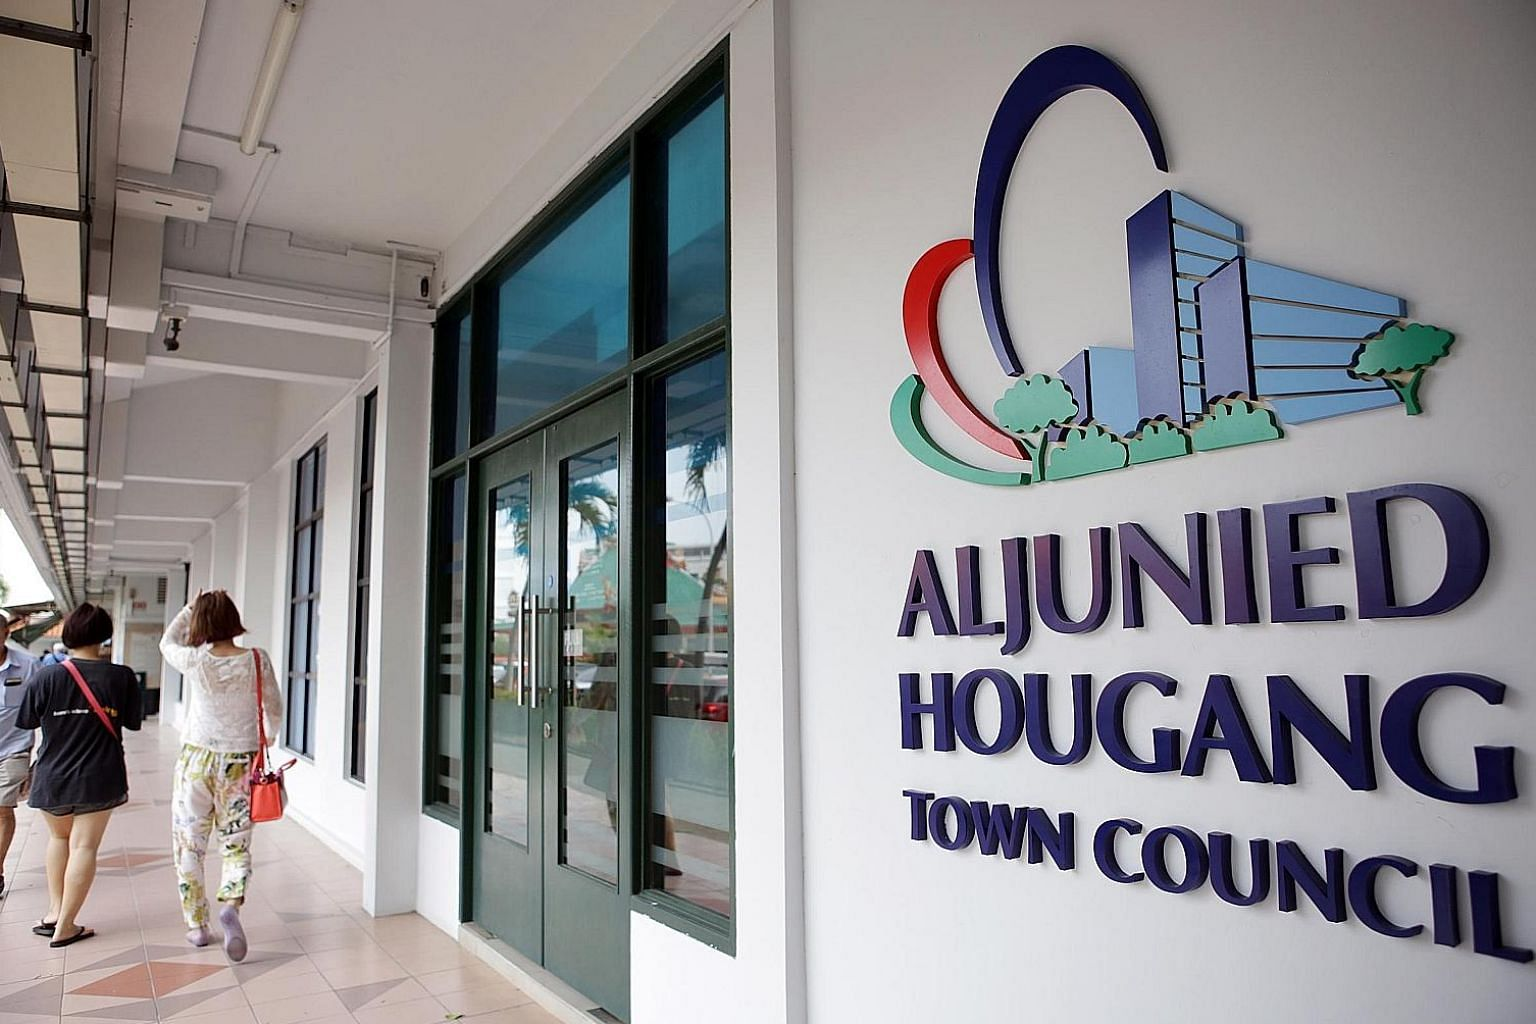 MND said AHTC's external auditor issued disclaimers this year in the areas of the town council's opening balances, conservancy and service fees received in advance, payables and accrued expenses, as well as staff costs.